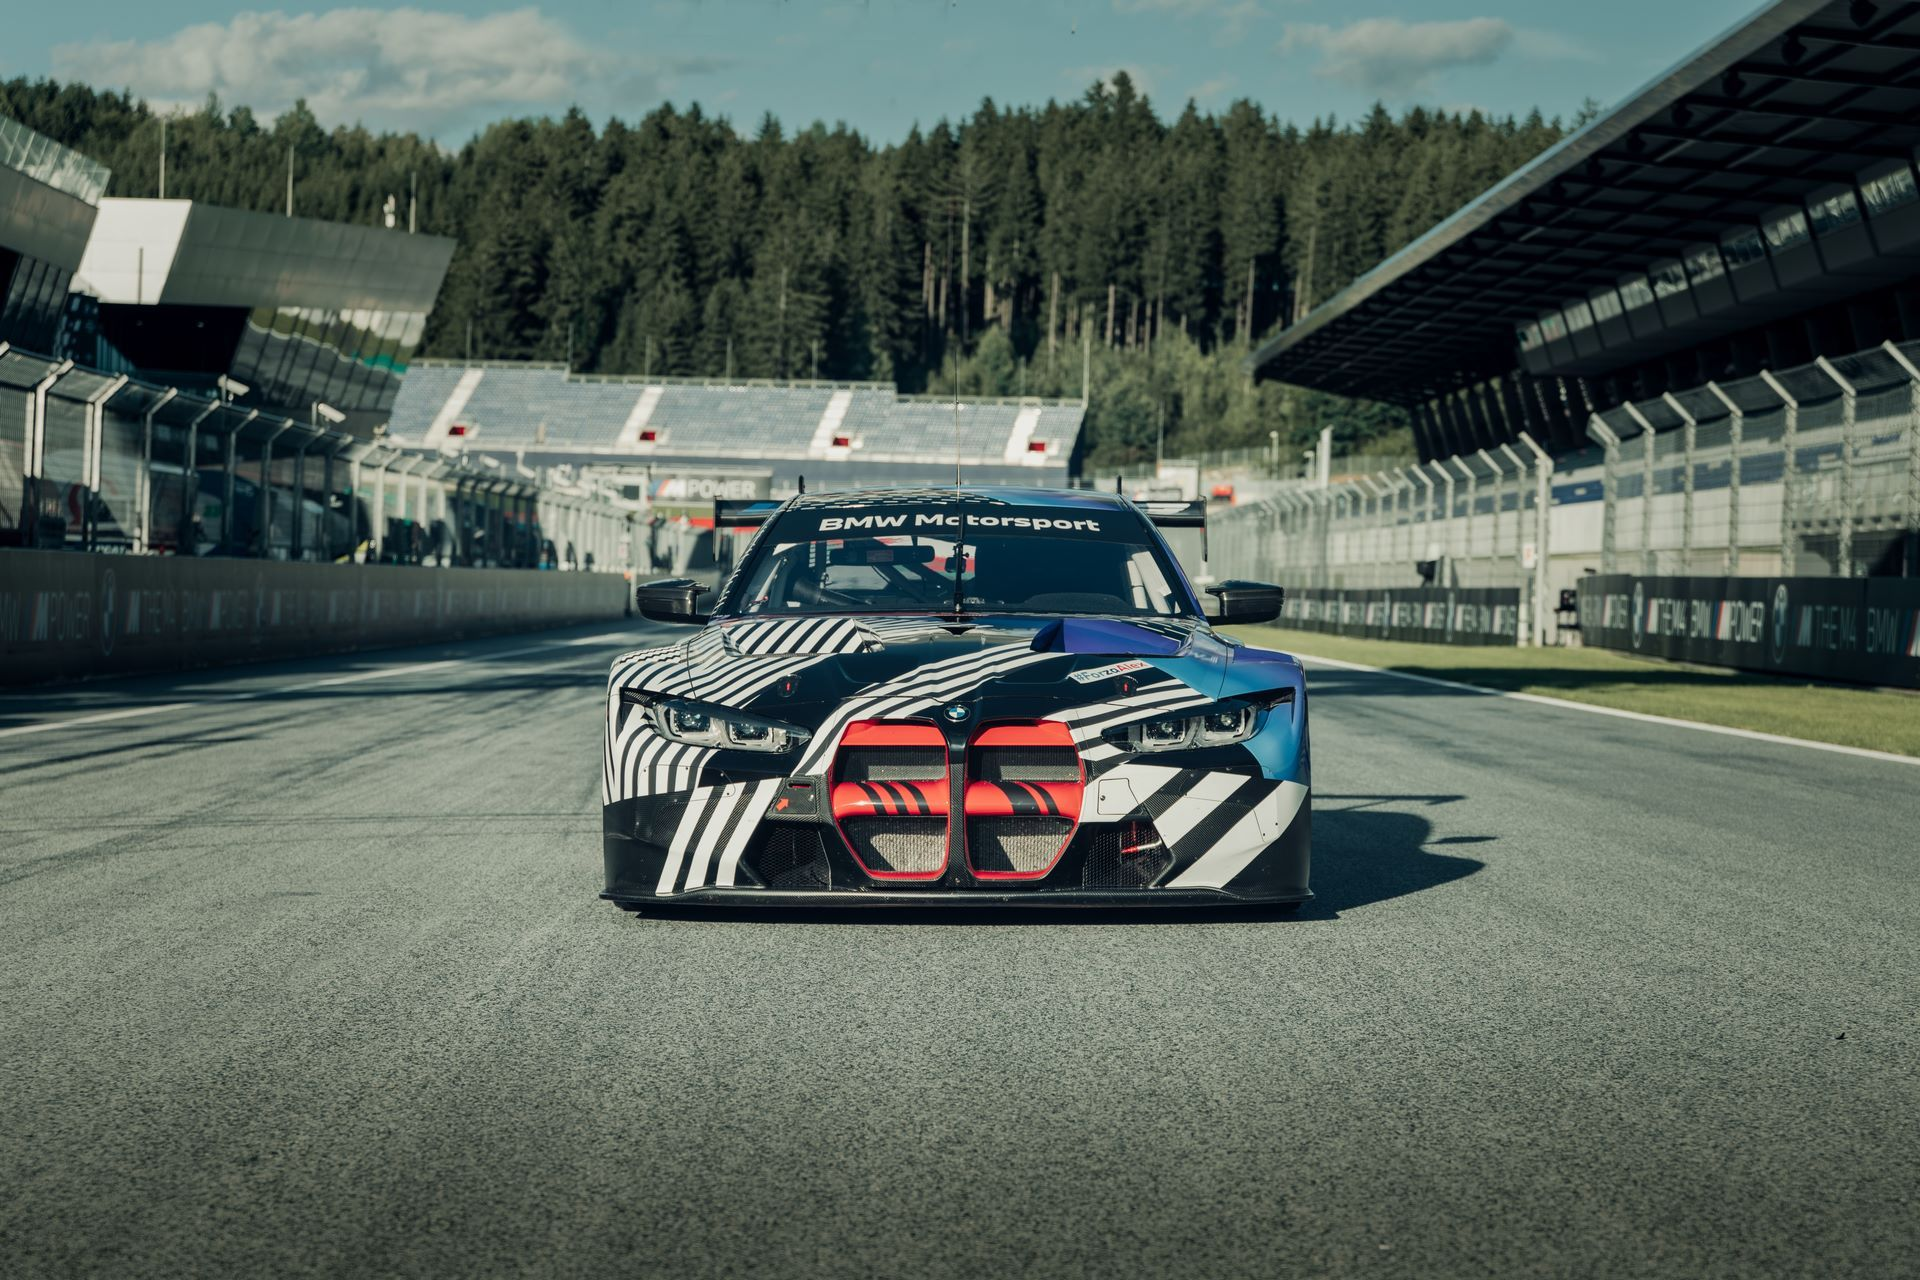 New-BMW-M4-Coupe-and-BMW-M4-GT3-prototypes-14